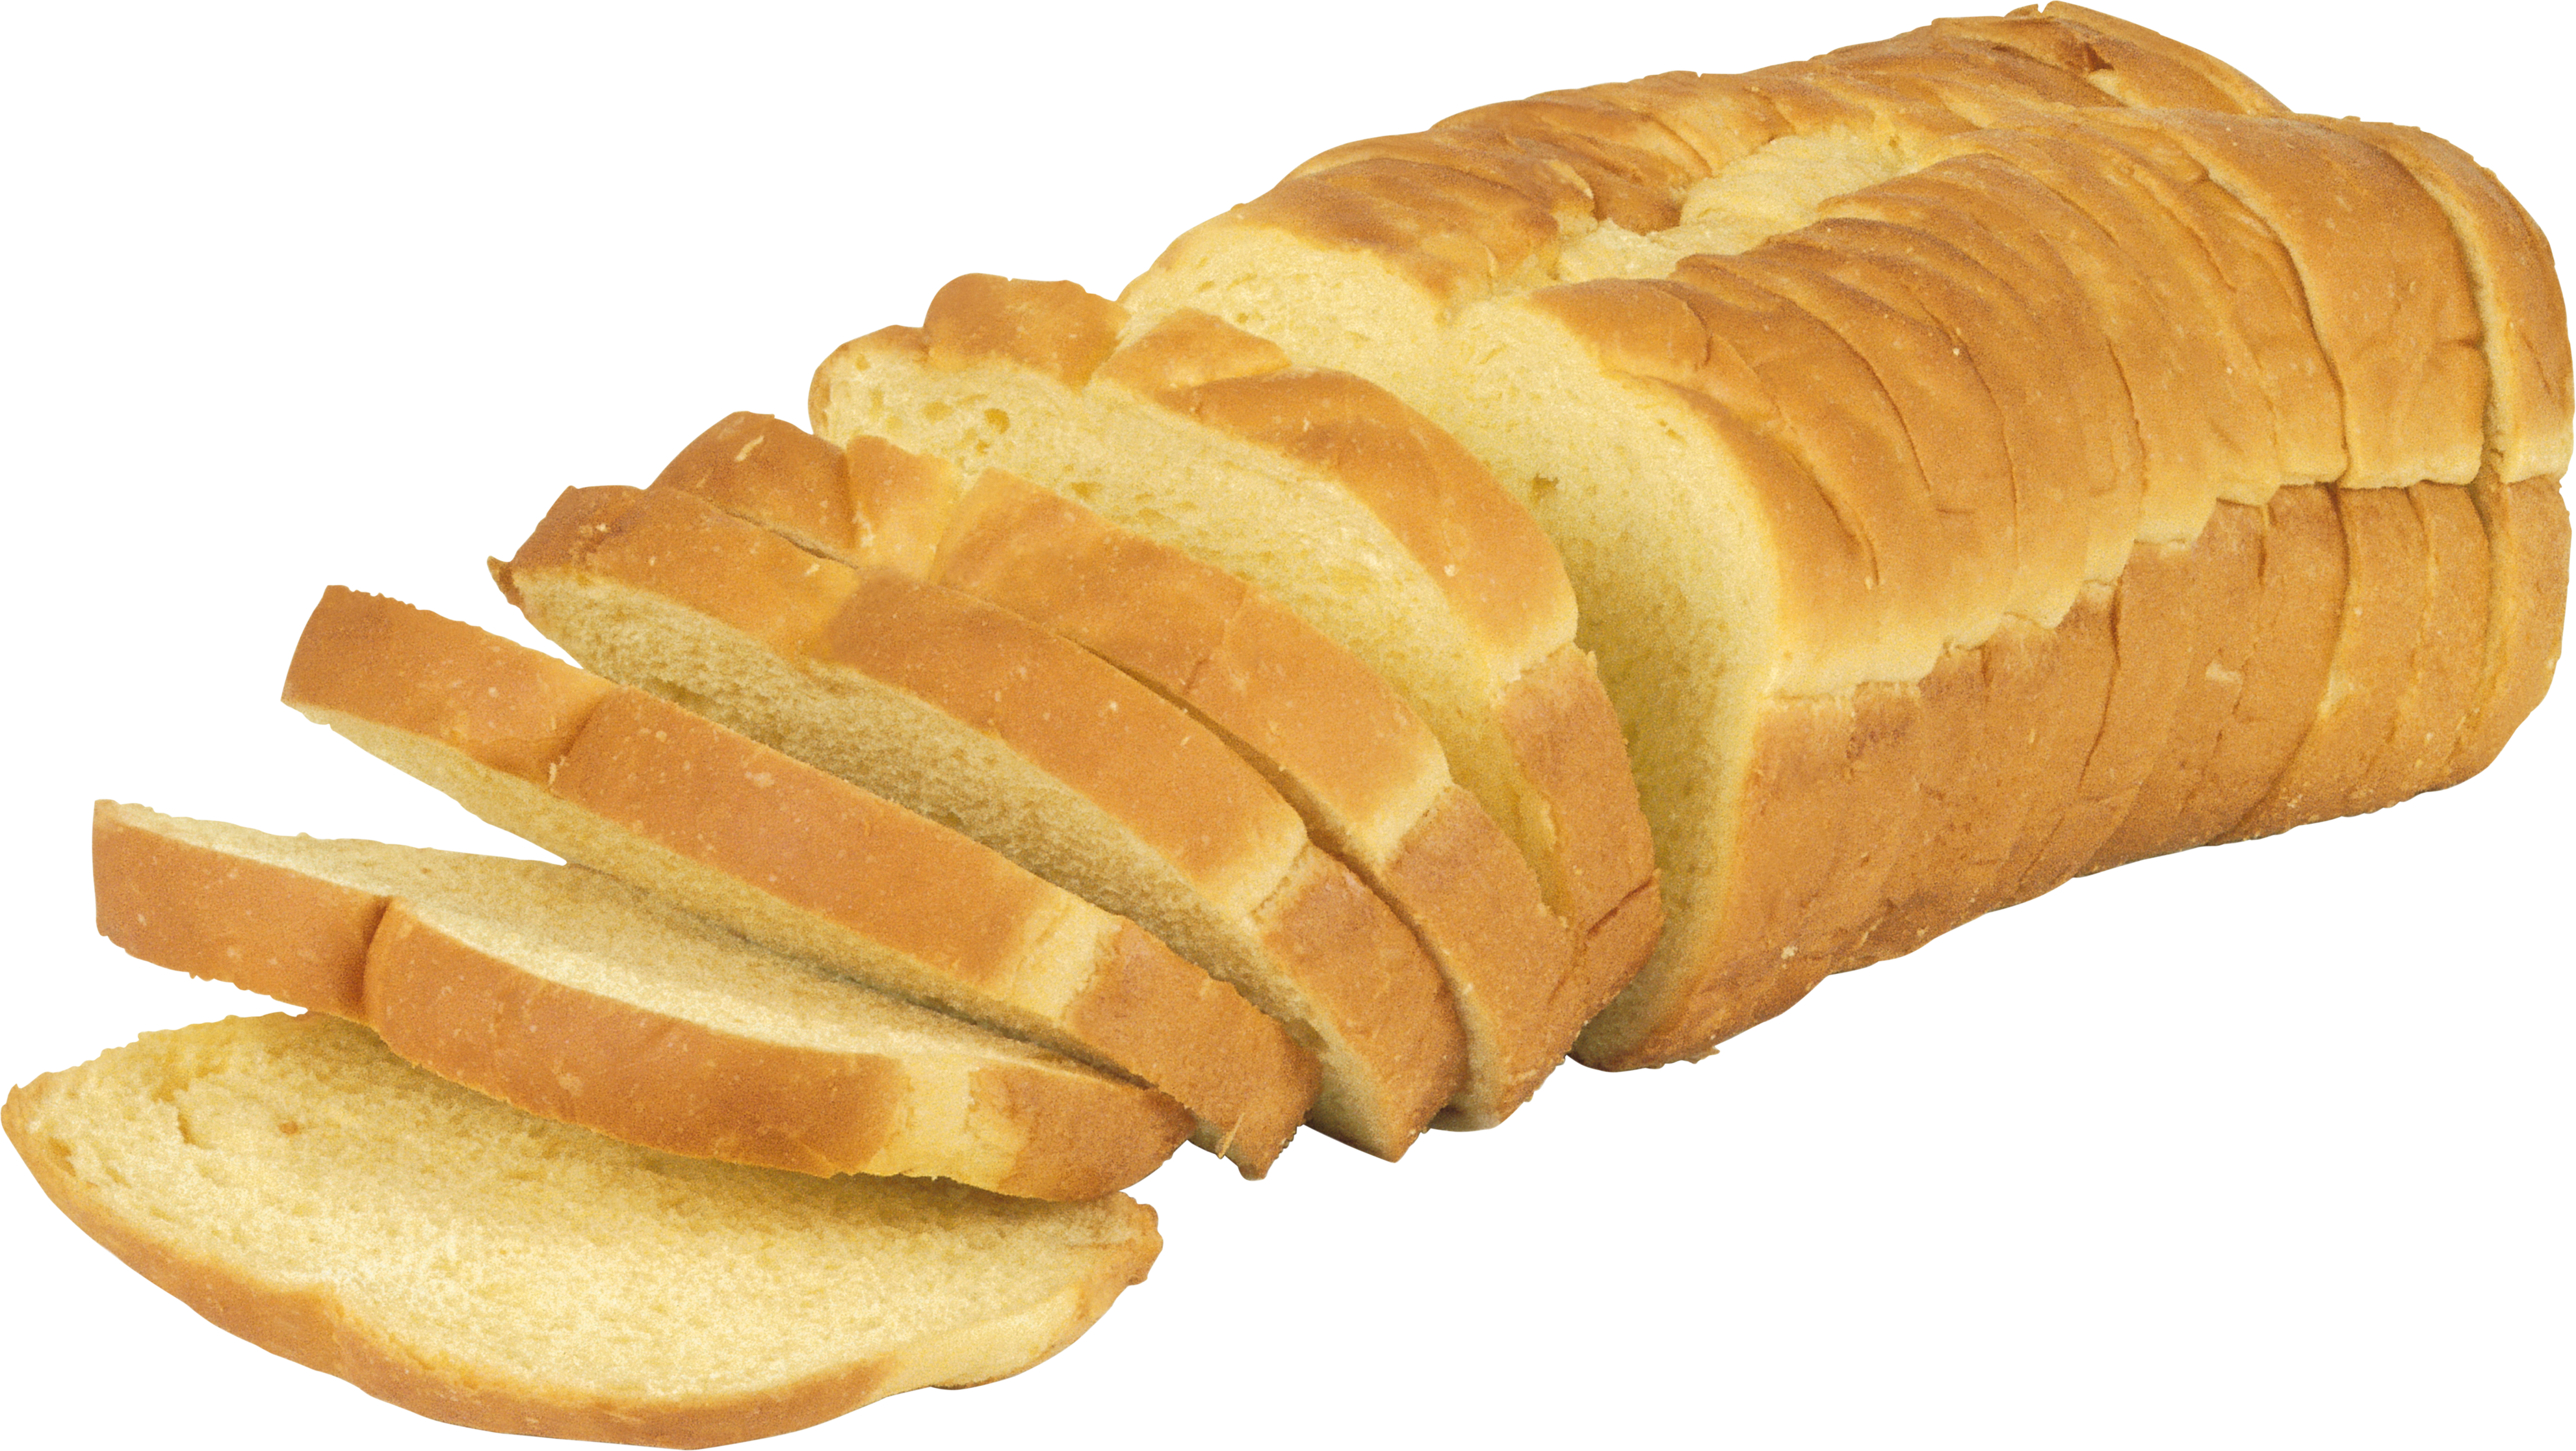 bread clipart transparent background pencil and color #18034